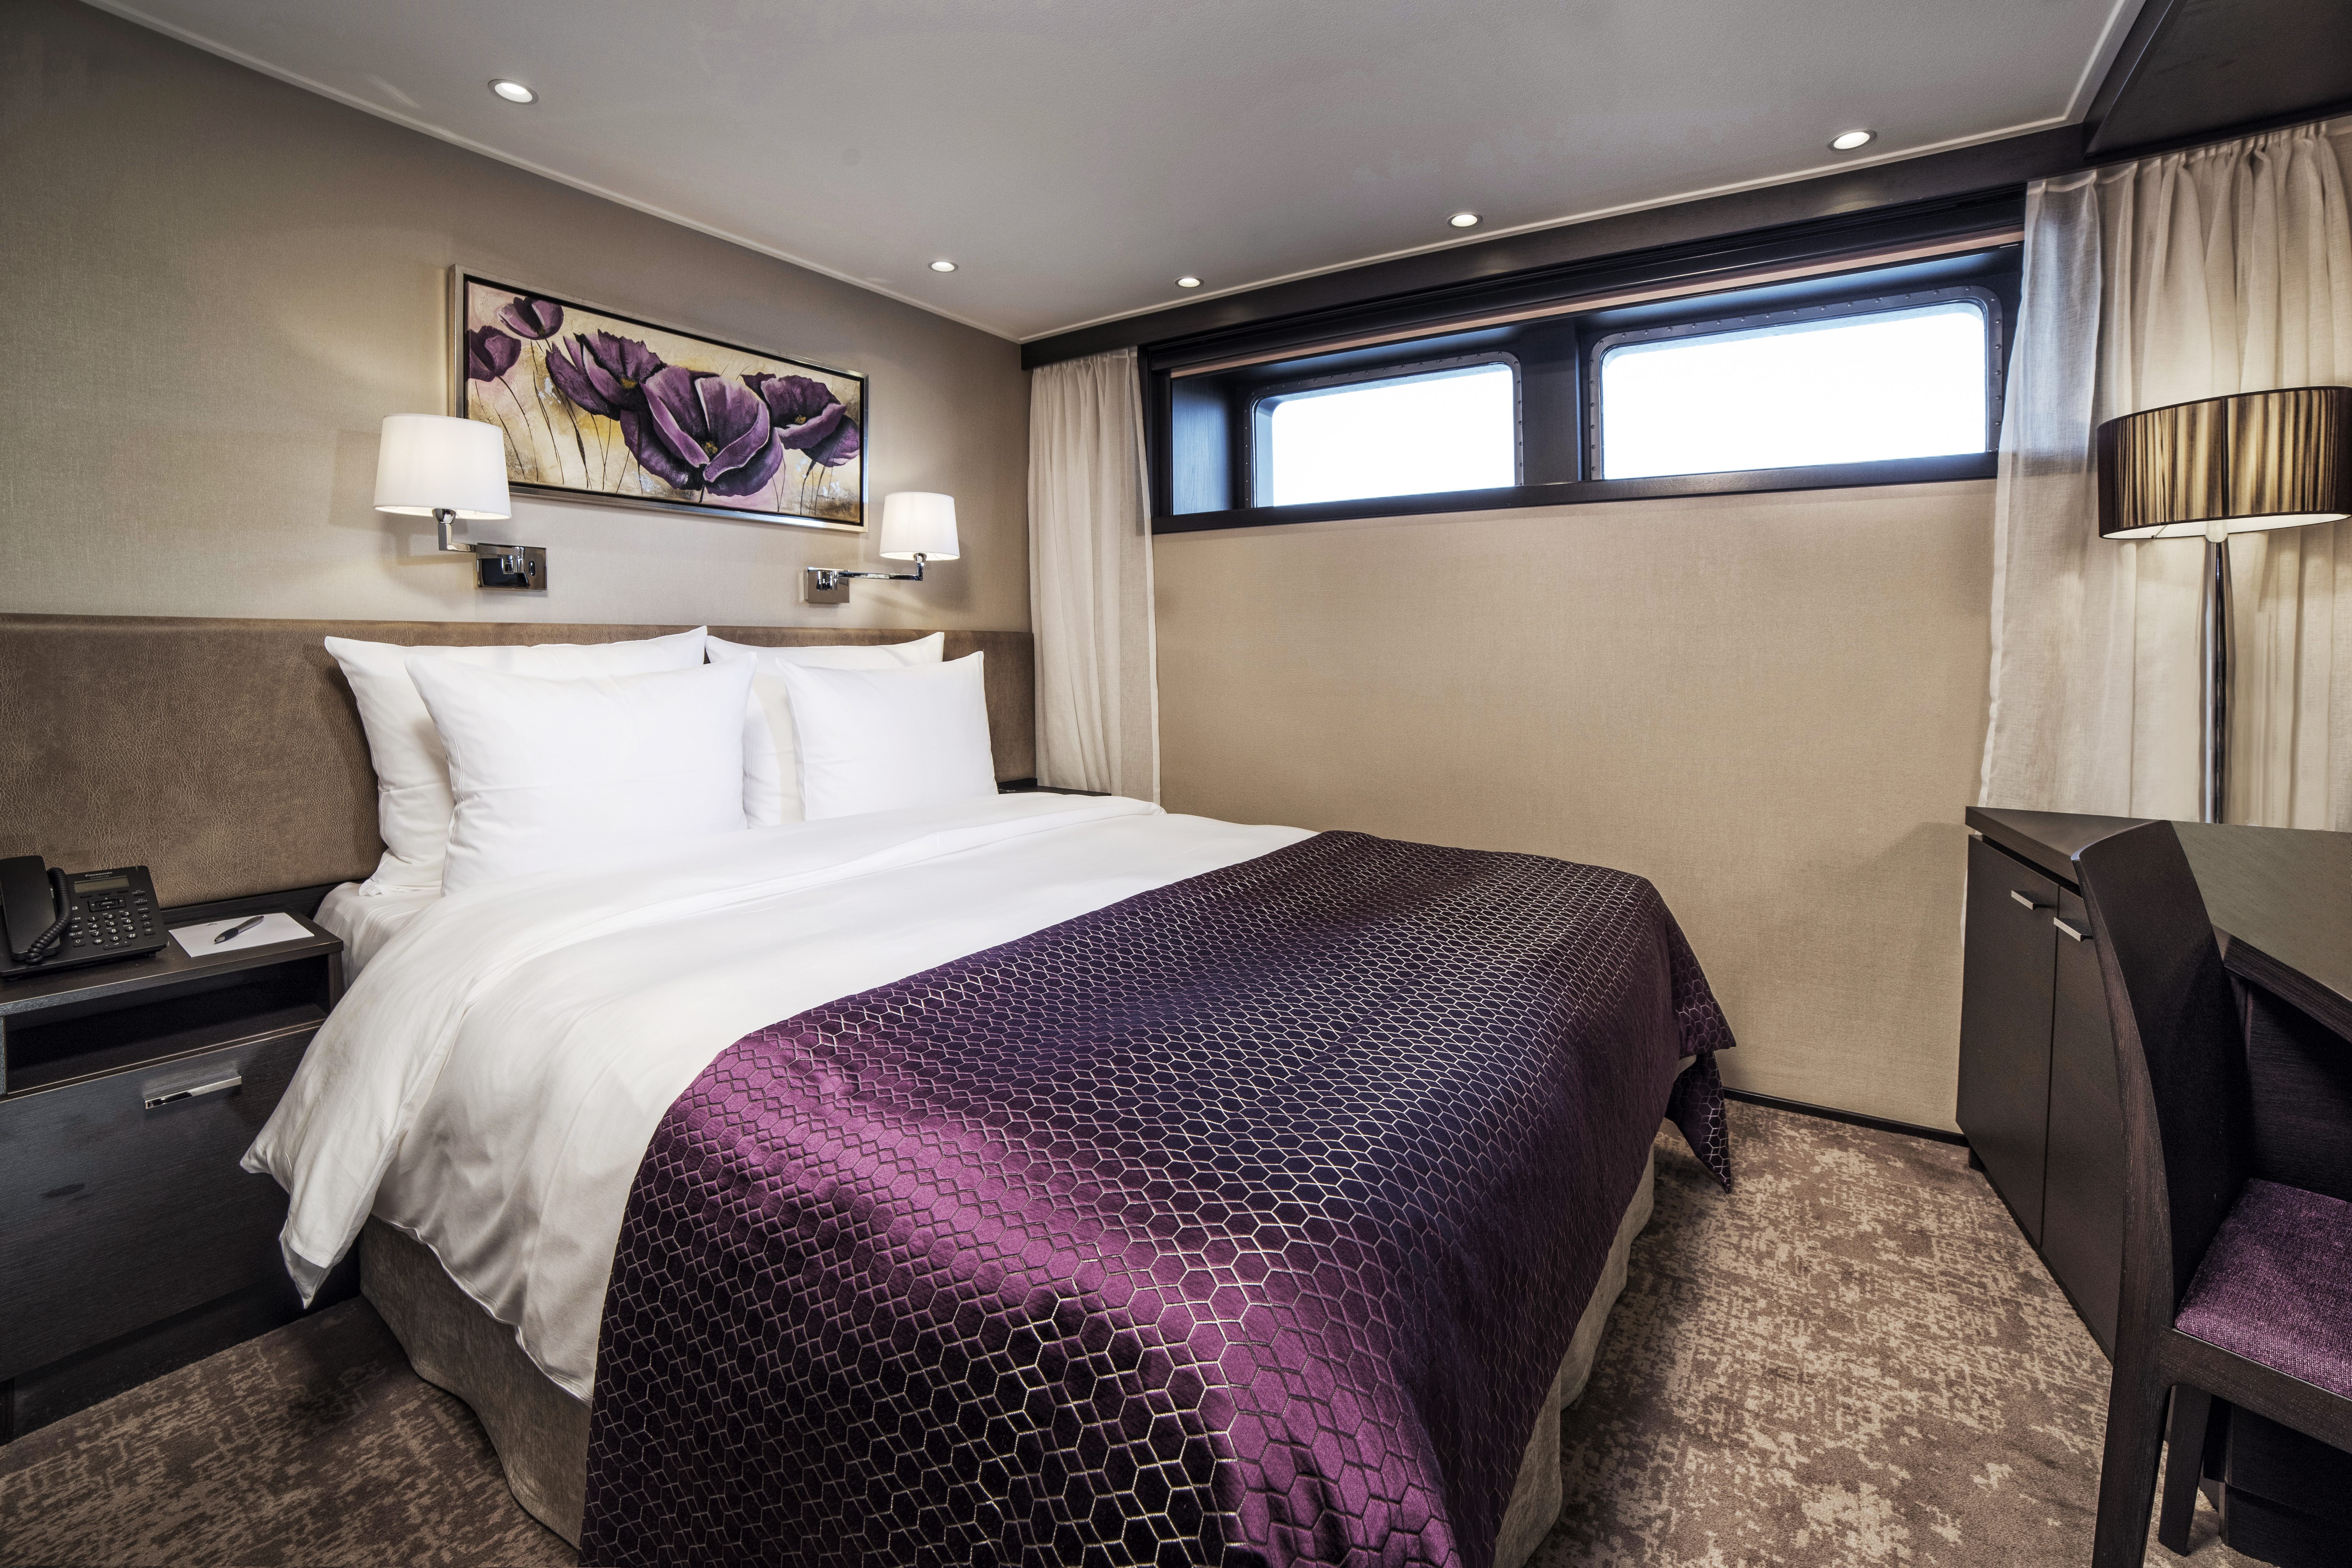 ENVISION_deluxe_stateroom-1.jpg